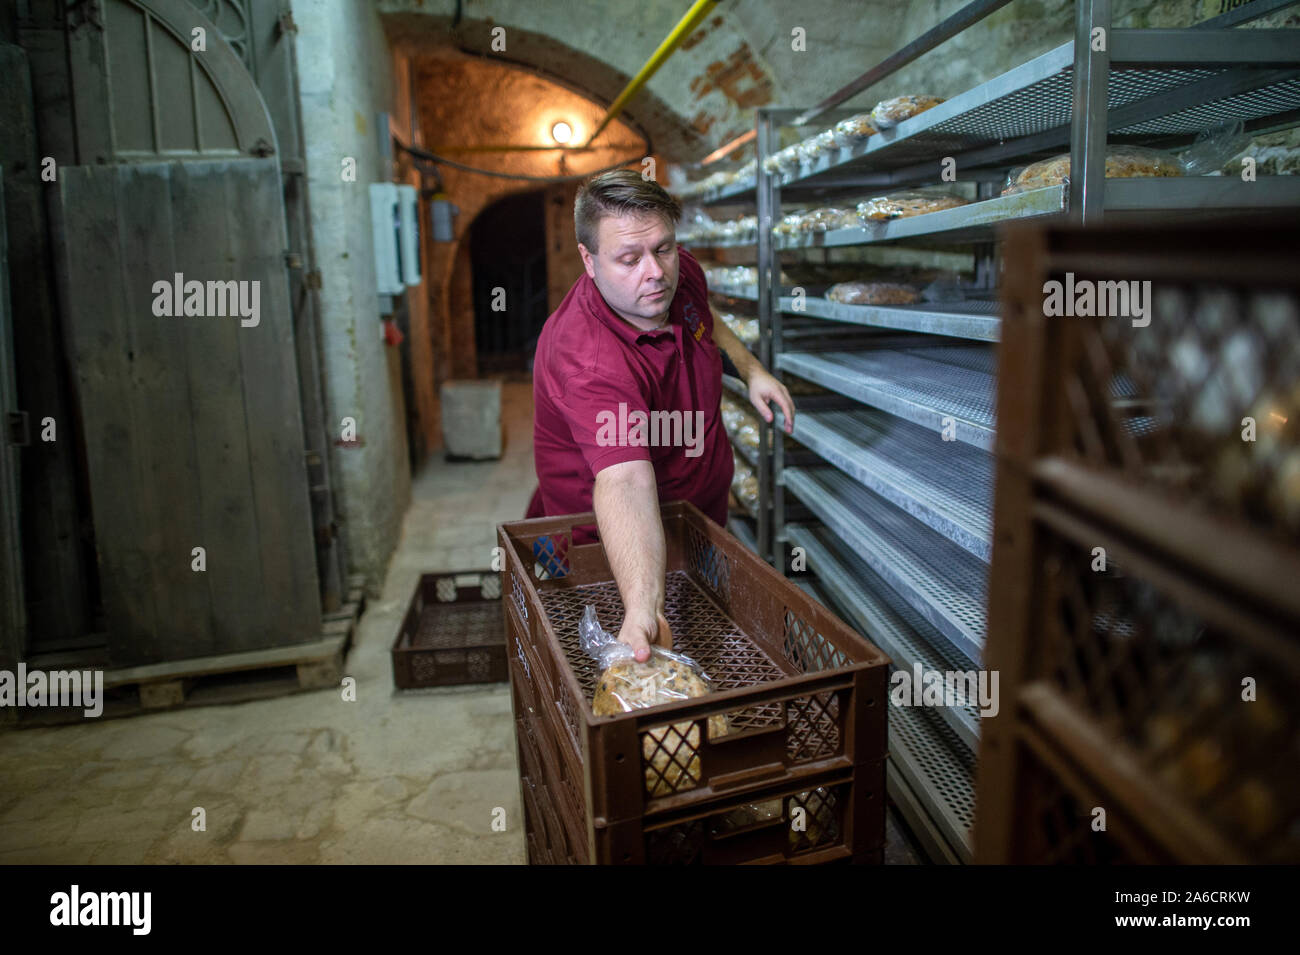 24 October 2019, Saxony-Anhalt, Halberstadt: Peter Potratz, master baker with the Halberstadt bakers and confectioners stores fresh Stollen in the Remter cellar of the cathedral. The bread-like cake covered with icing sugar is to be stored in the Remter cellar of the cathedral in the coming weeks and matured in the constant climate of the vault. The Halberstadt cathedral gallery will be cut on 30 November 2019 in the cathedral during a devotion. Photo: Klaus-Dietmar Gabbert/dpa-Zentralbild/ZB Stock Photo